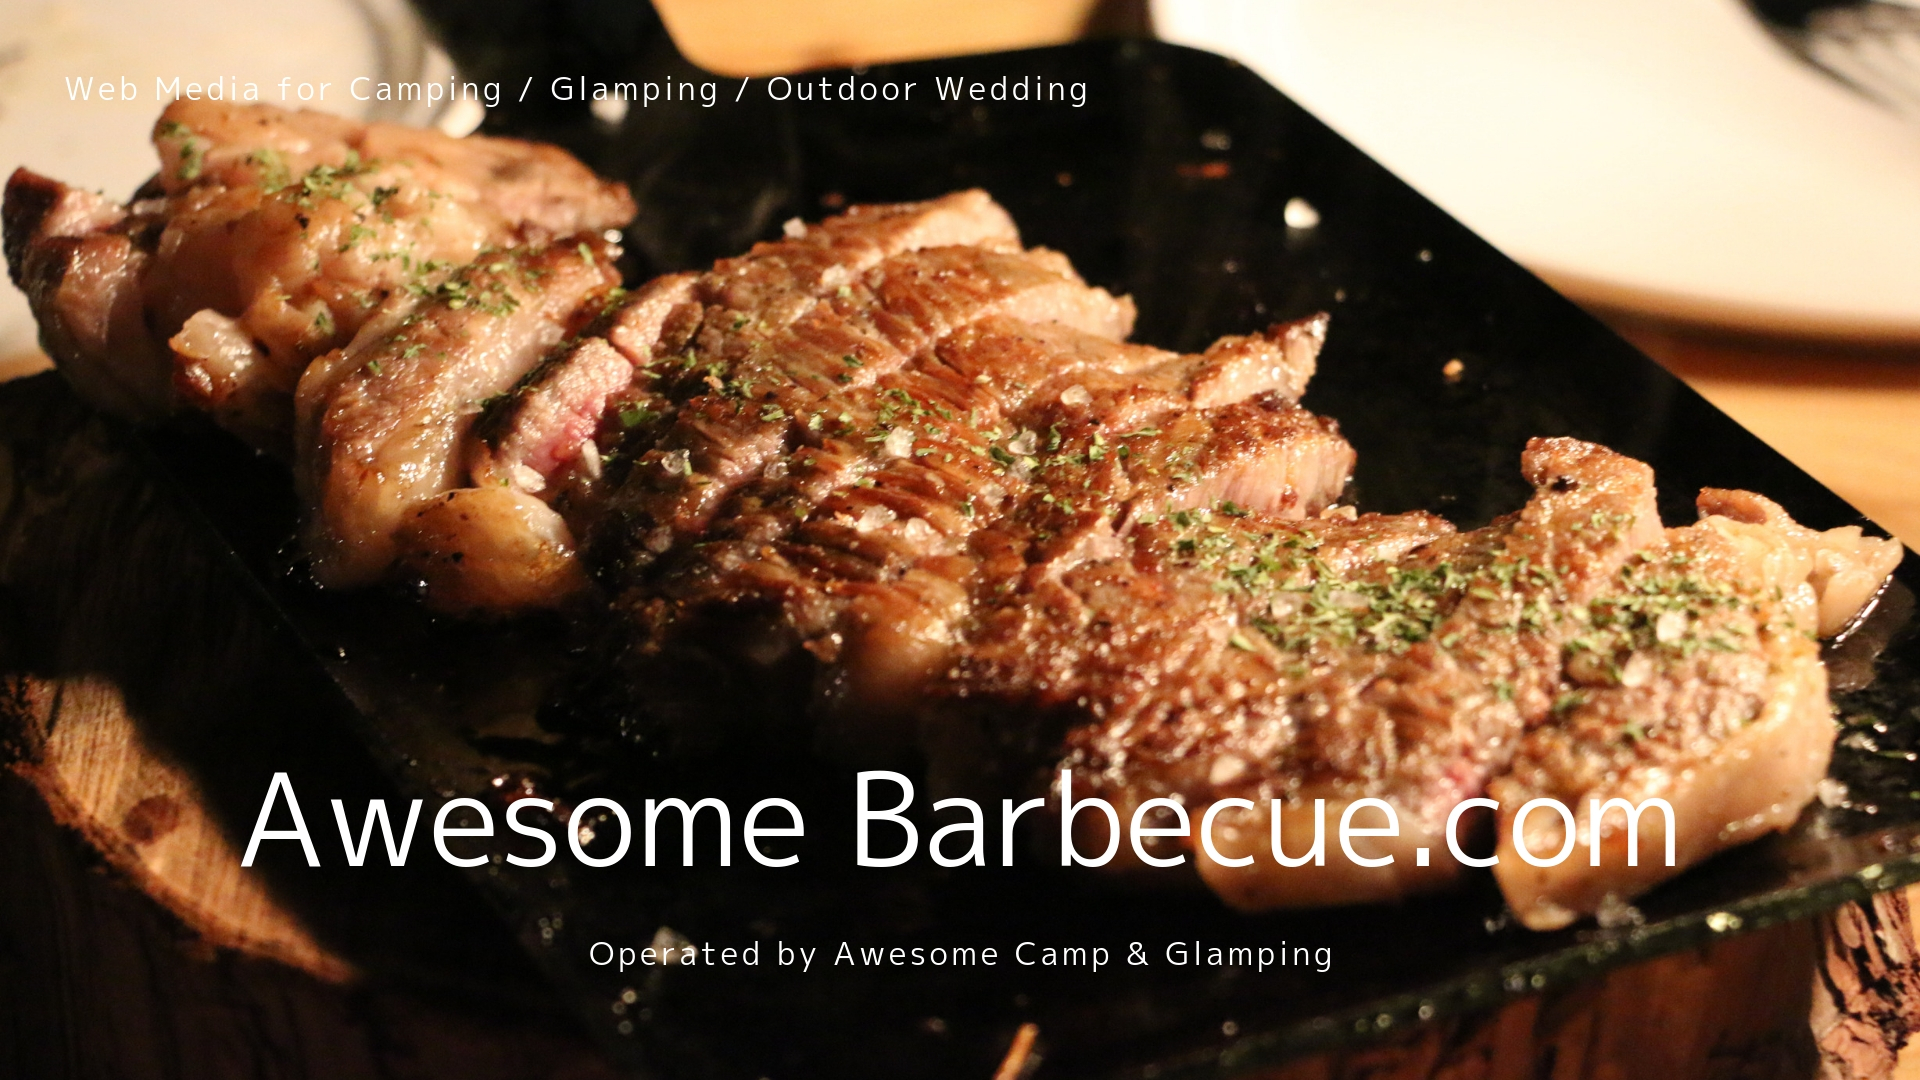 Awesome Barbecue.com